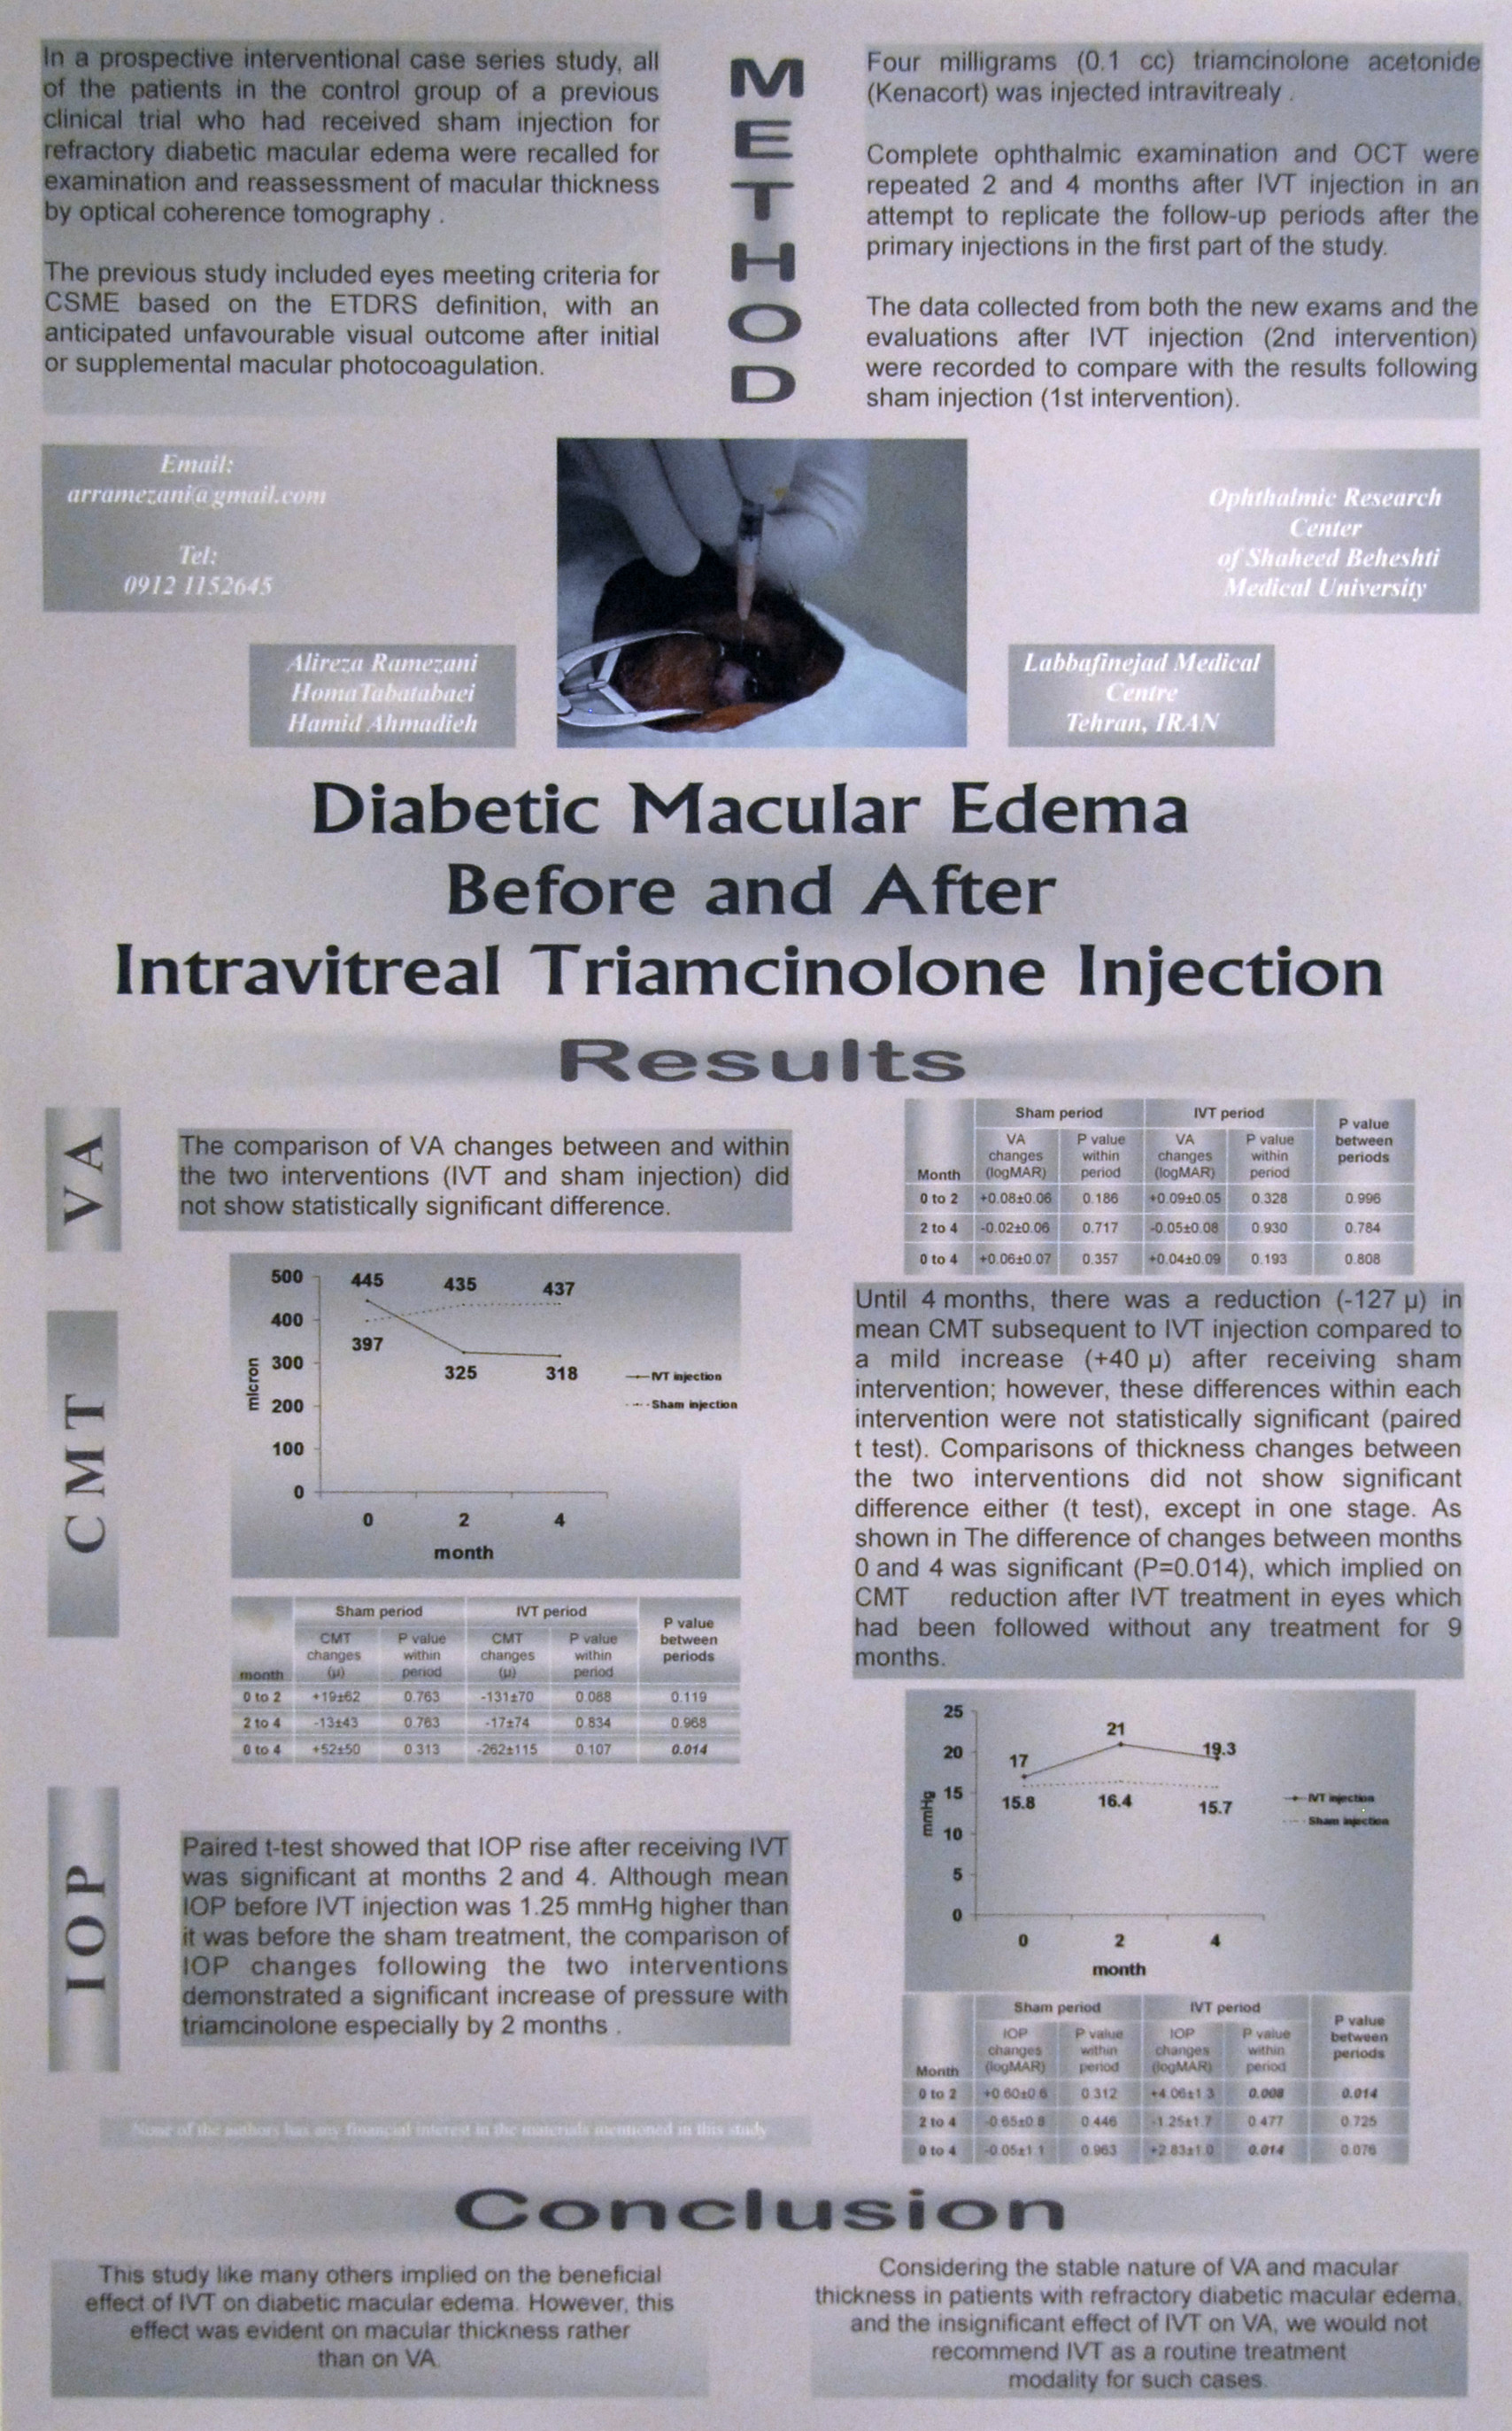 intravitreal triamcinolone acetonide for refractory diabetic macular edema itsw